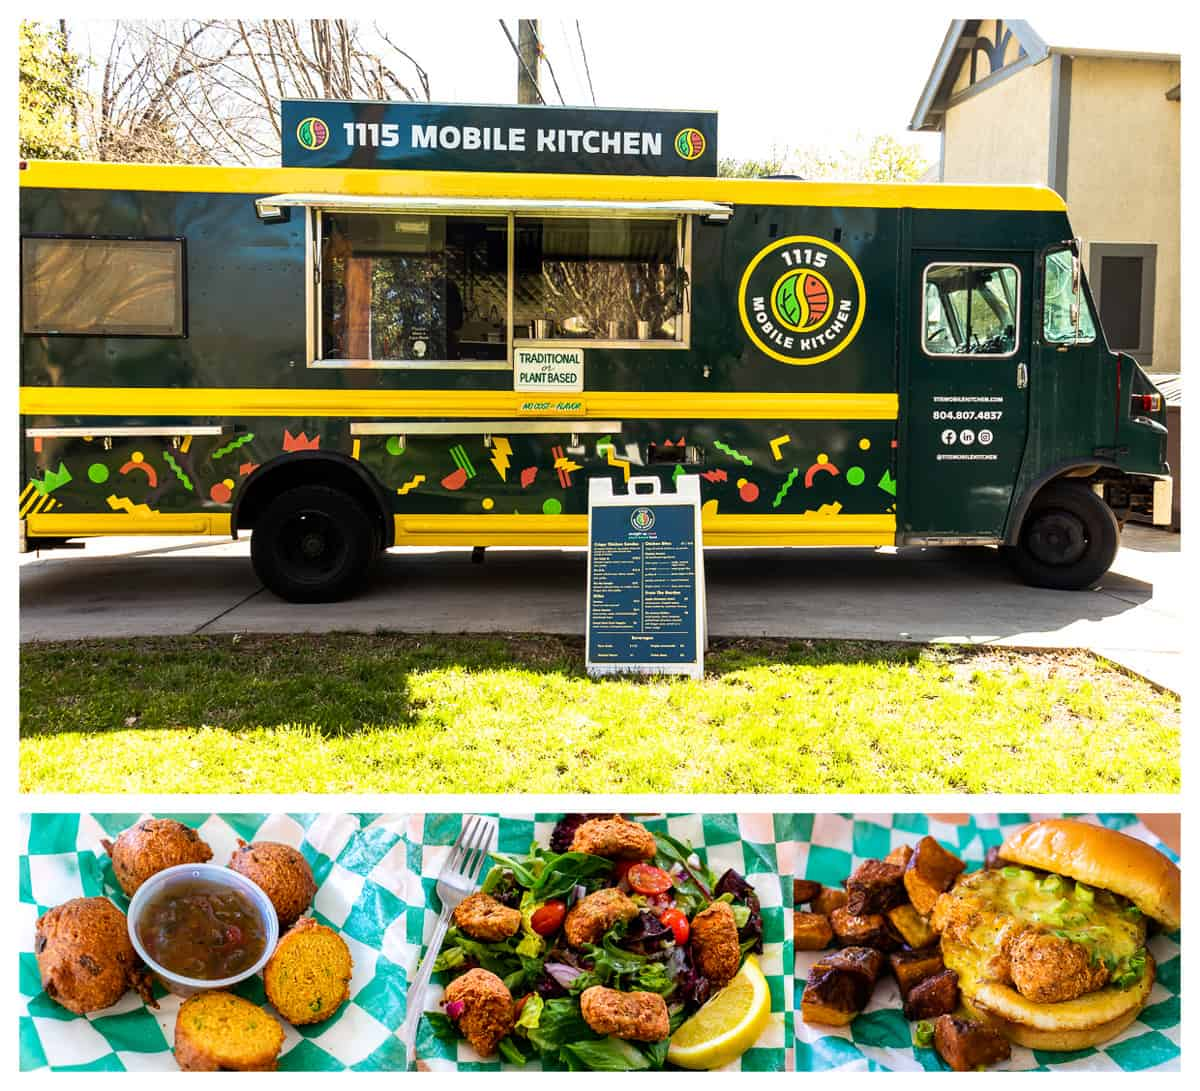 1115 Mobile Kitchen food truck